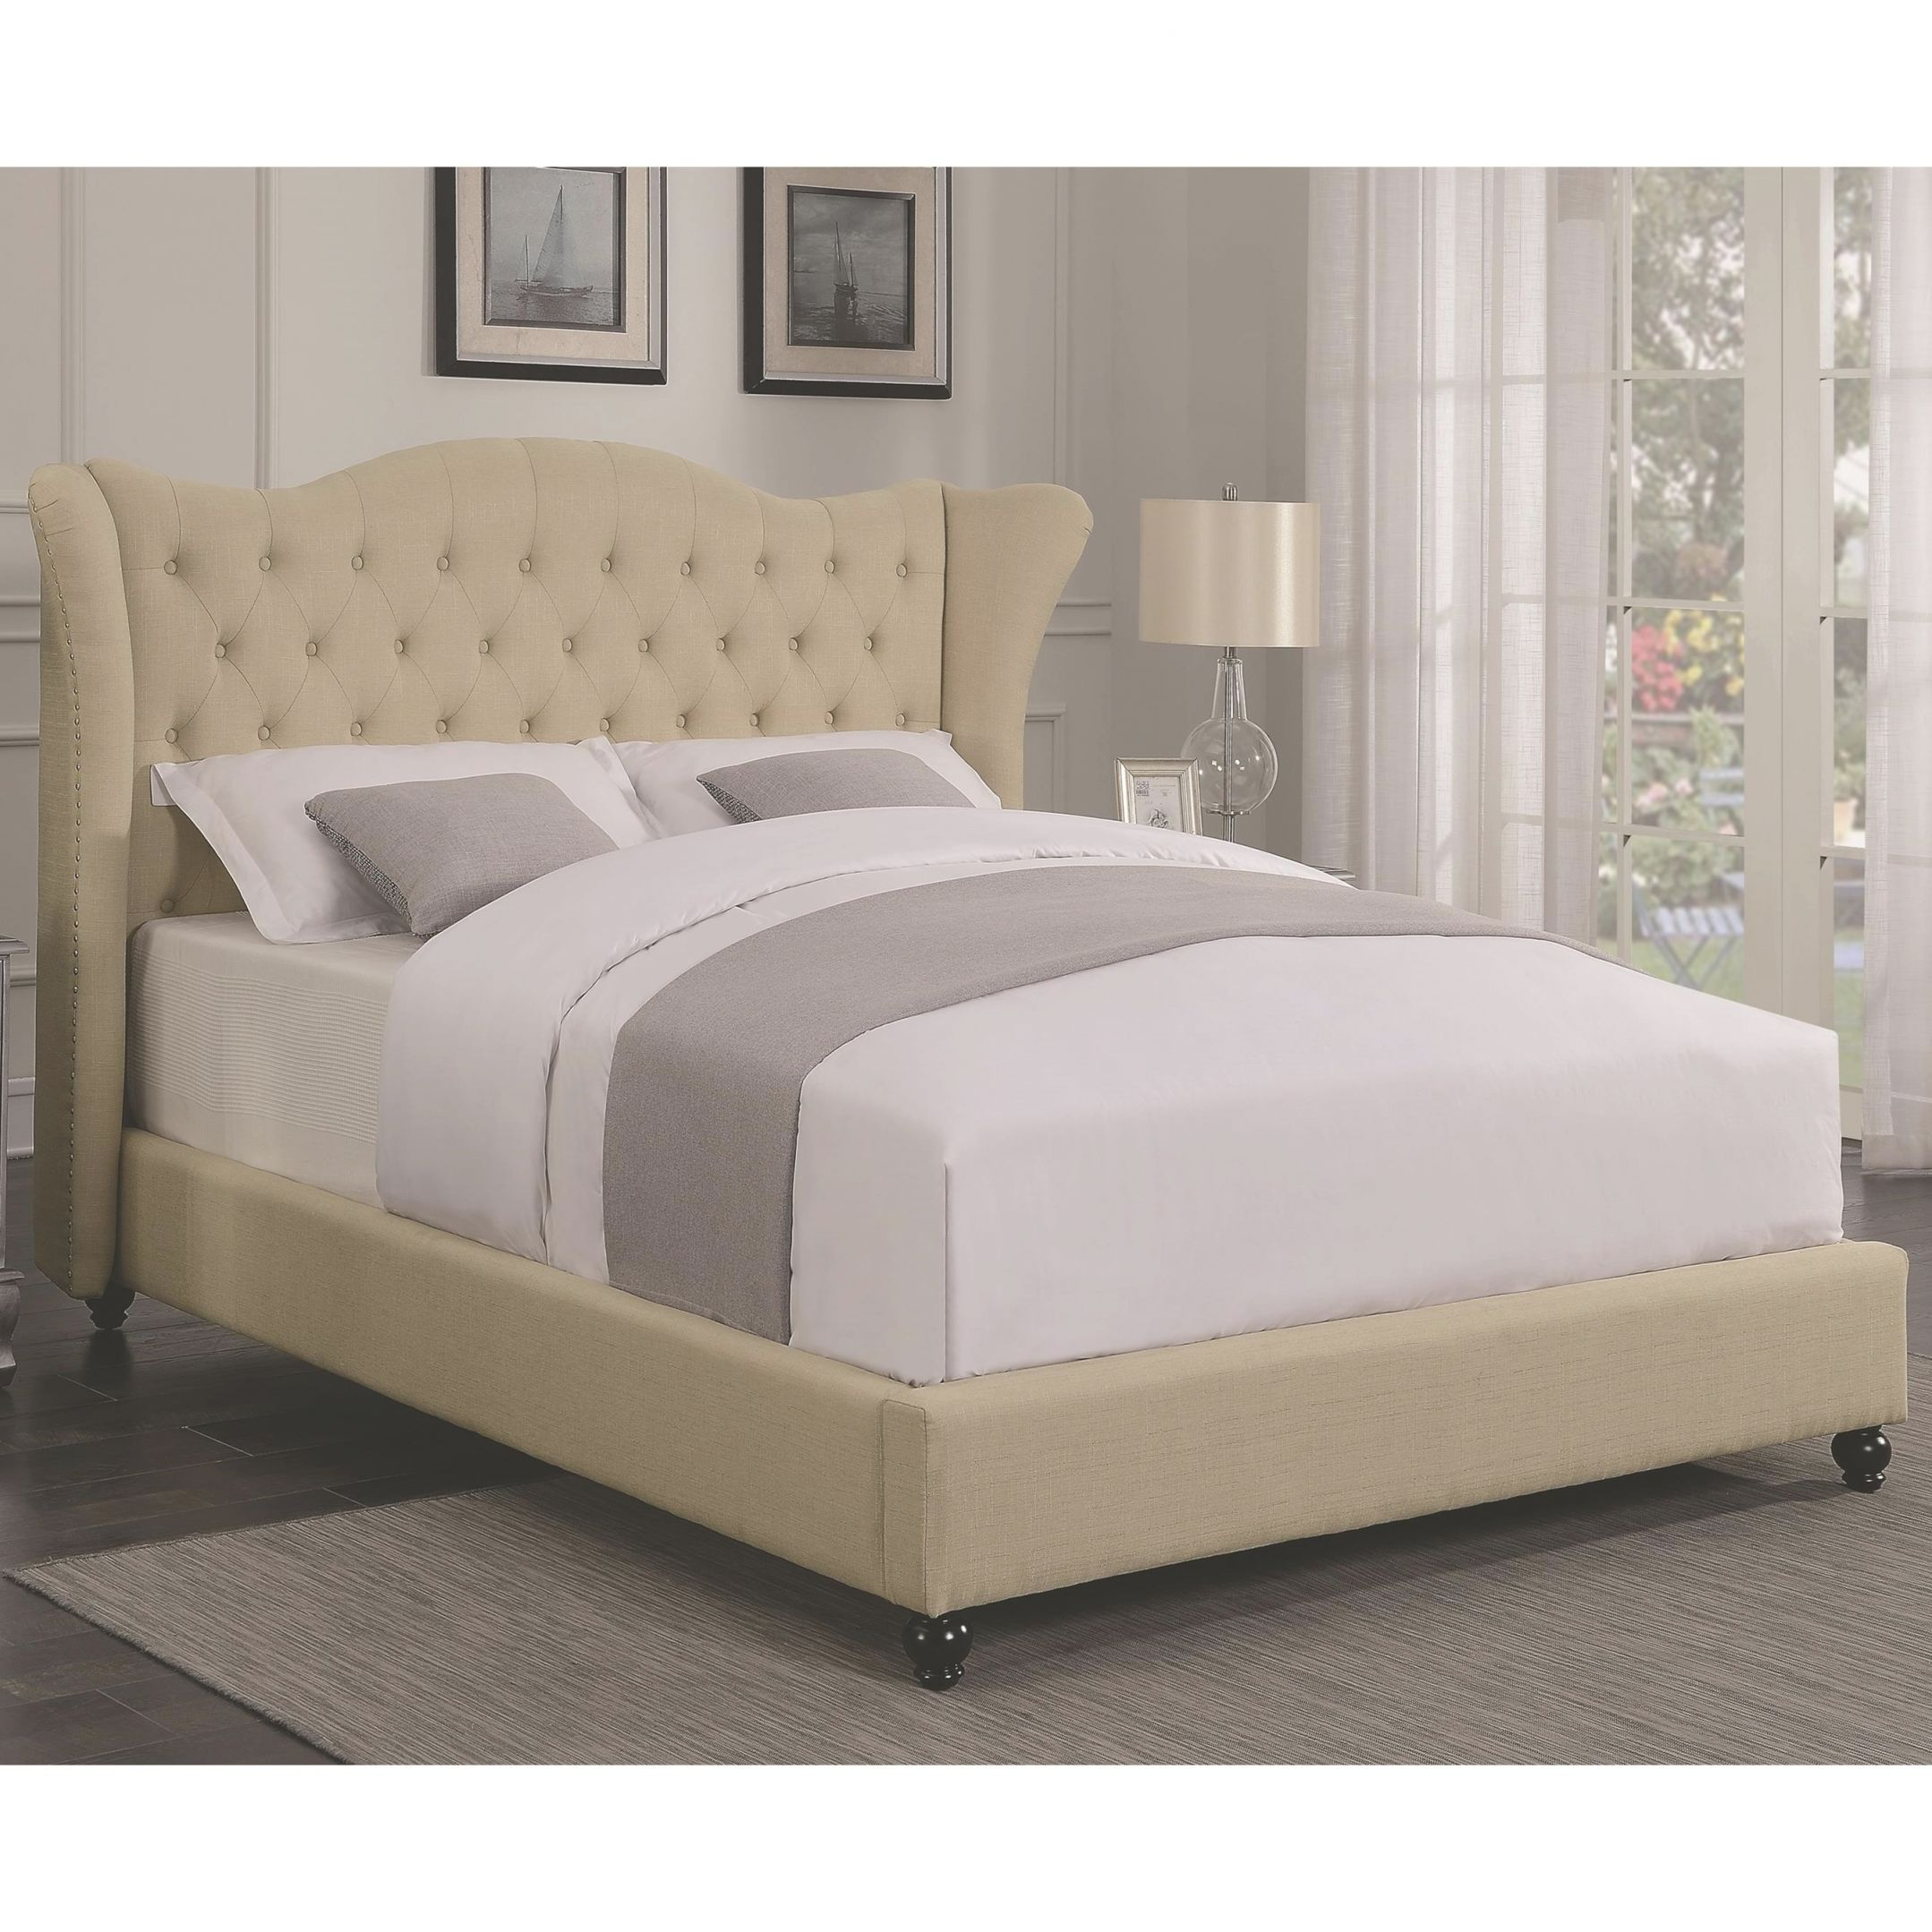 Coronado Transitional Upholstered King Bed With Button Tufted Headboard Coaster At Value City Furniture throughout King Bed Frame With Headboard